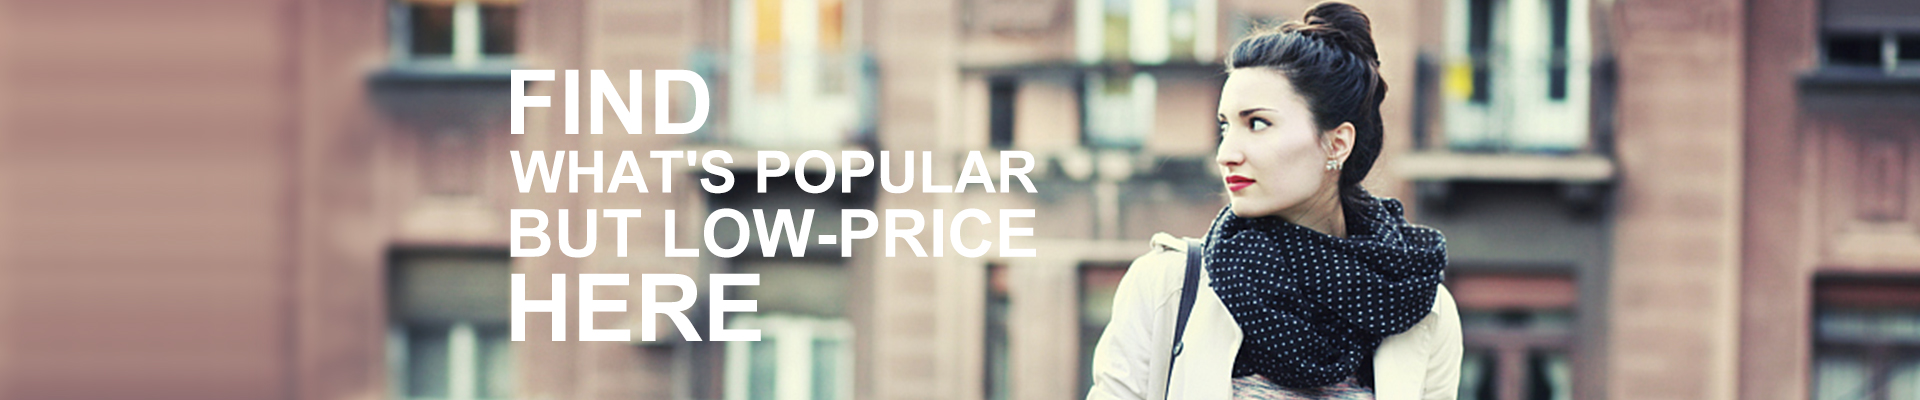 Find what's popular but low-price here